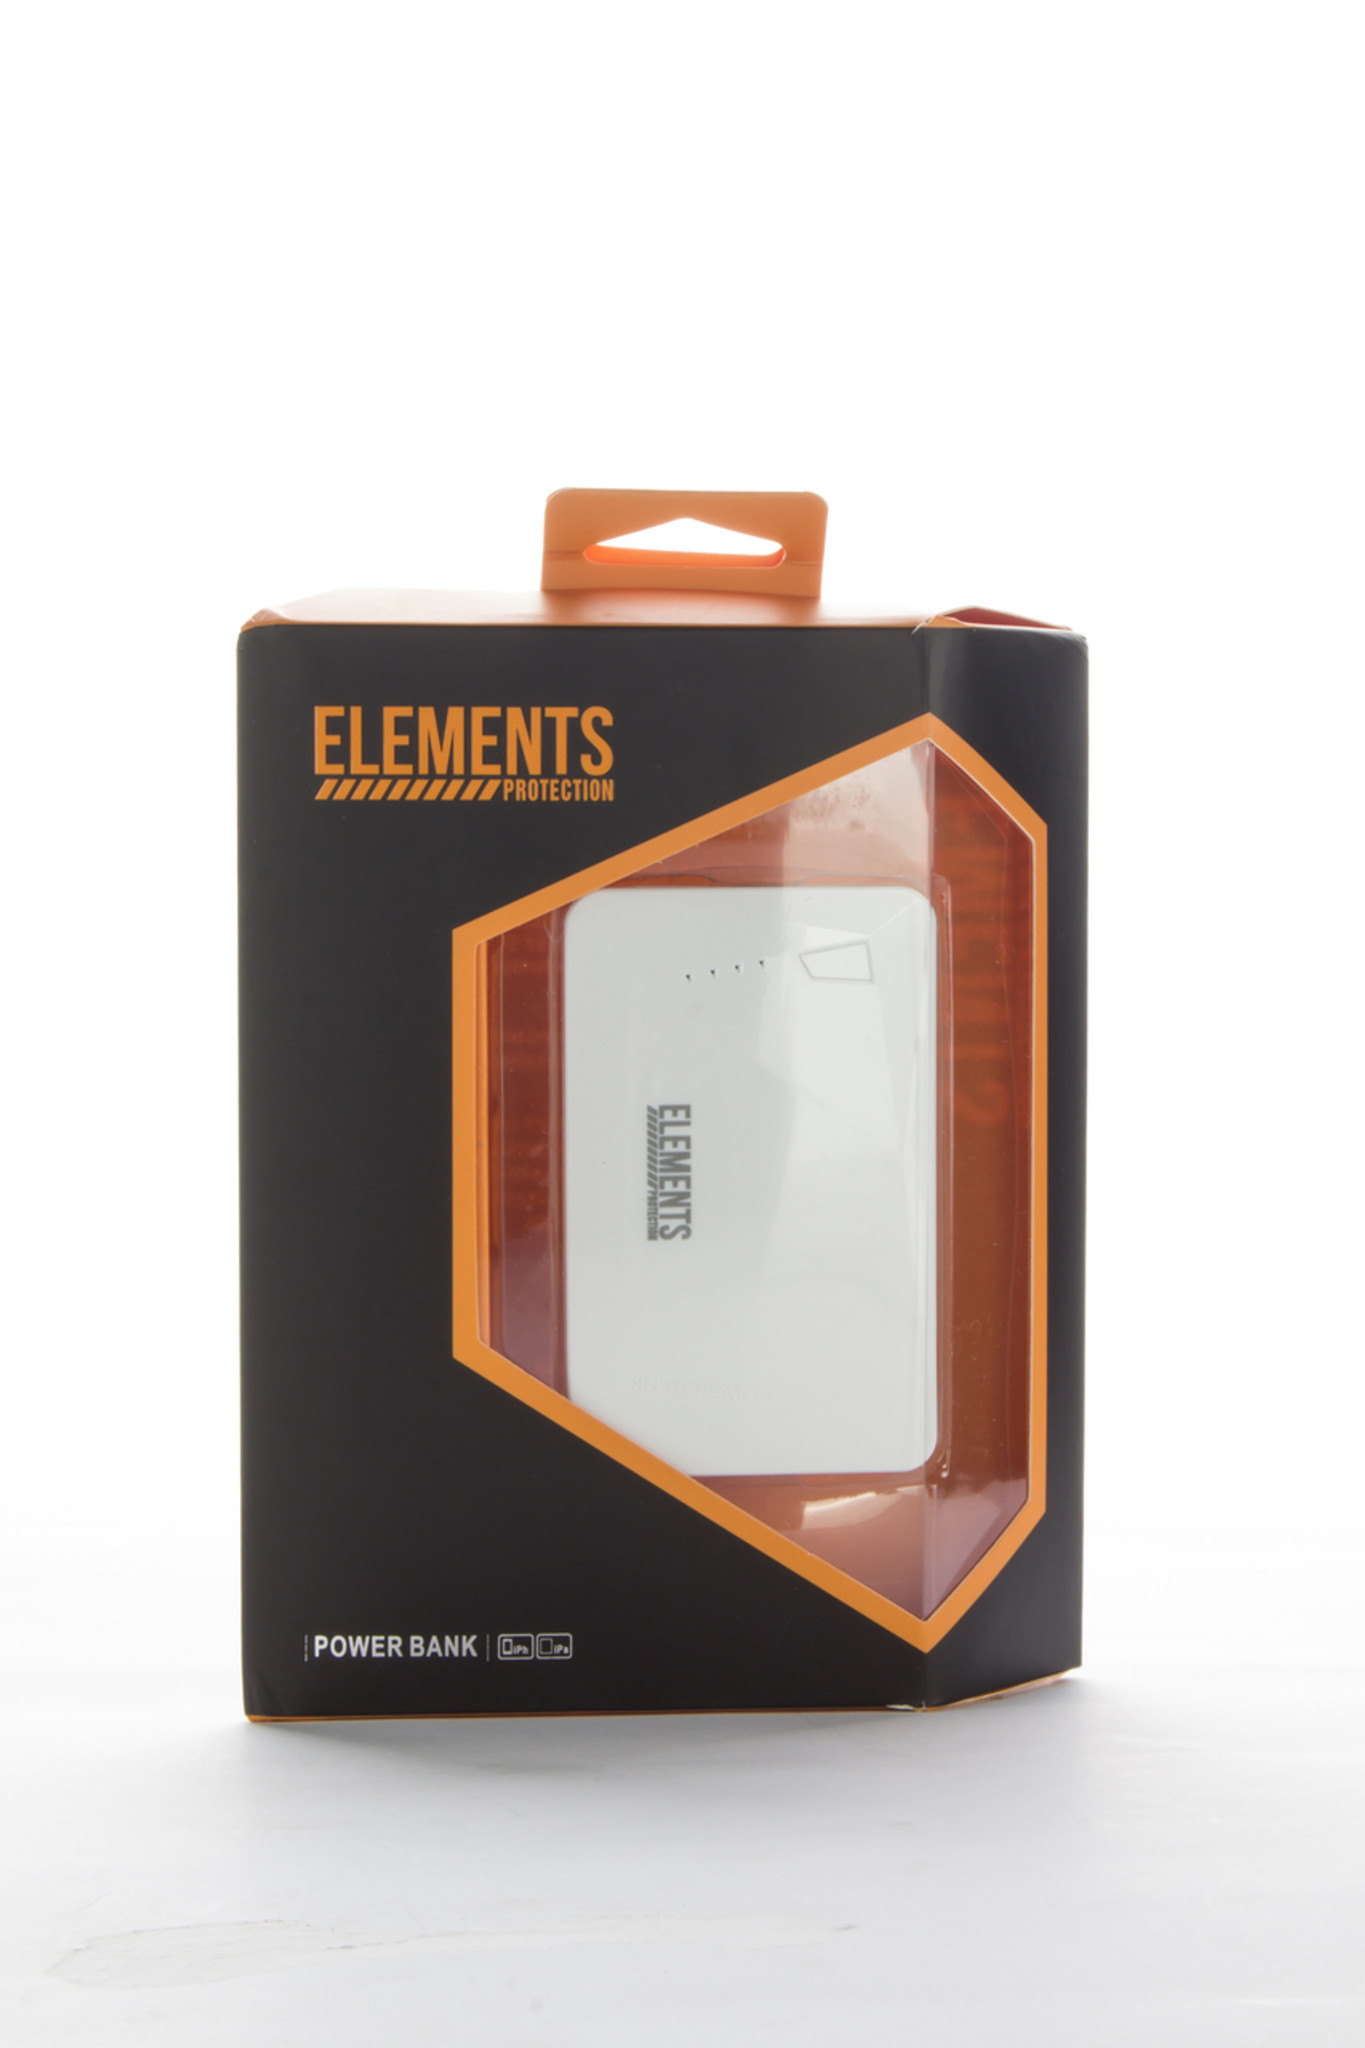 Elements Protection Canvas Power Bank